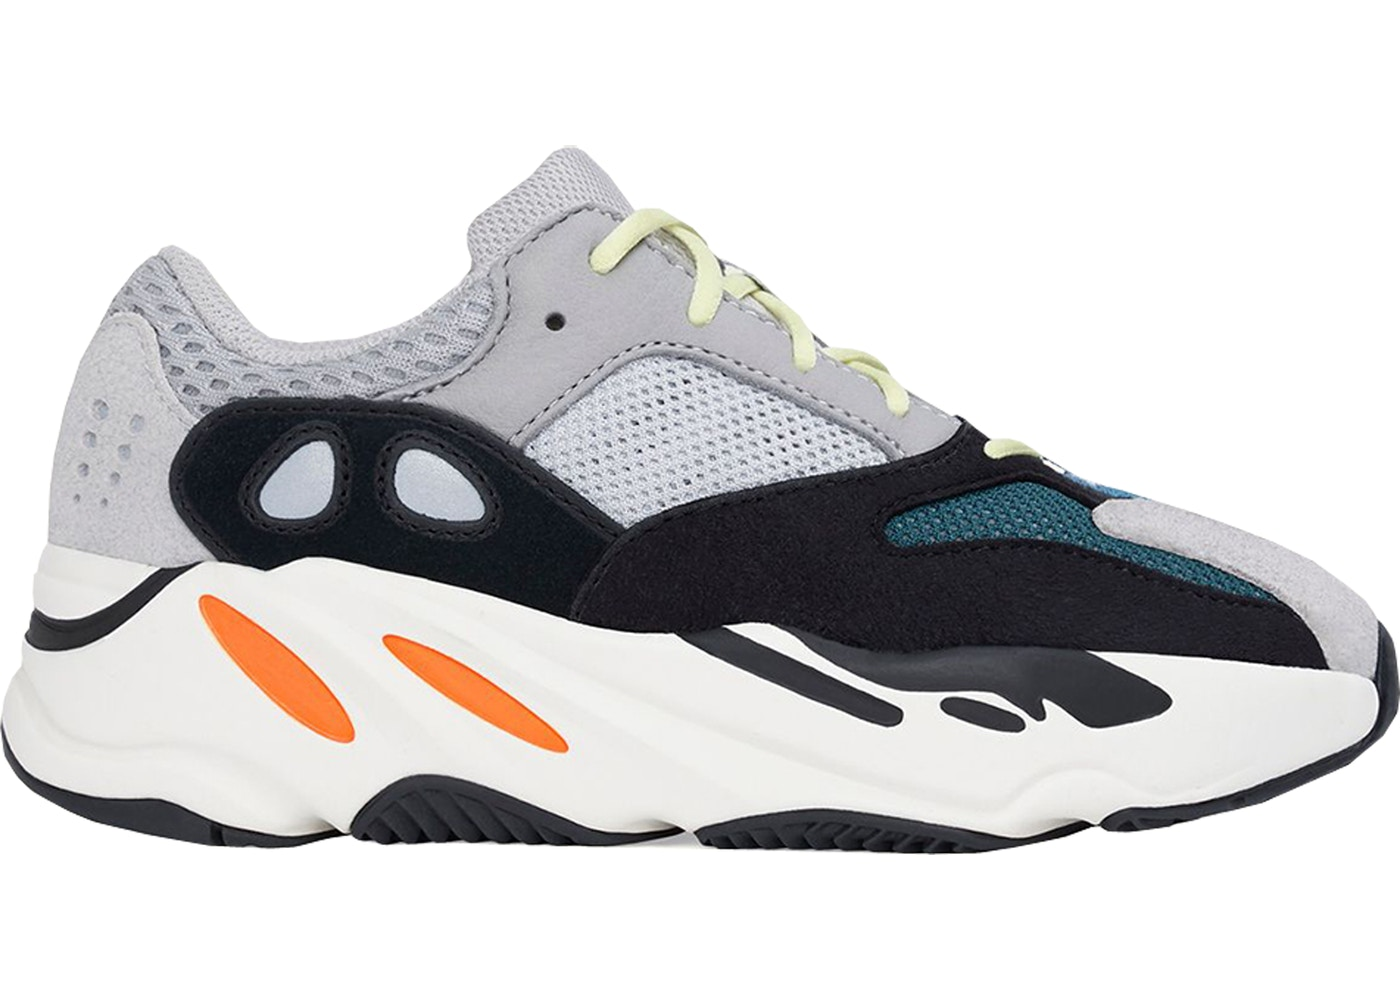 innovative design aafca 29018 adidas Yeezy Boost 700 Wave Runner Solid Grey (Kids)